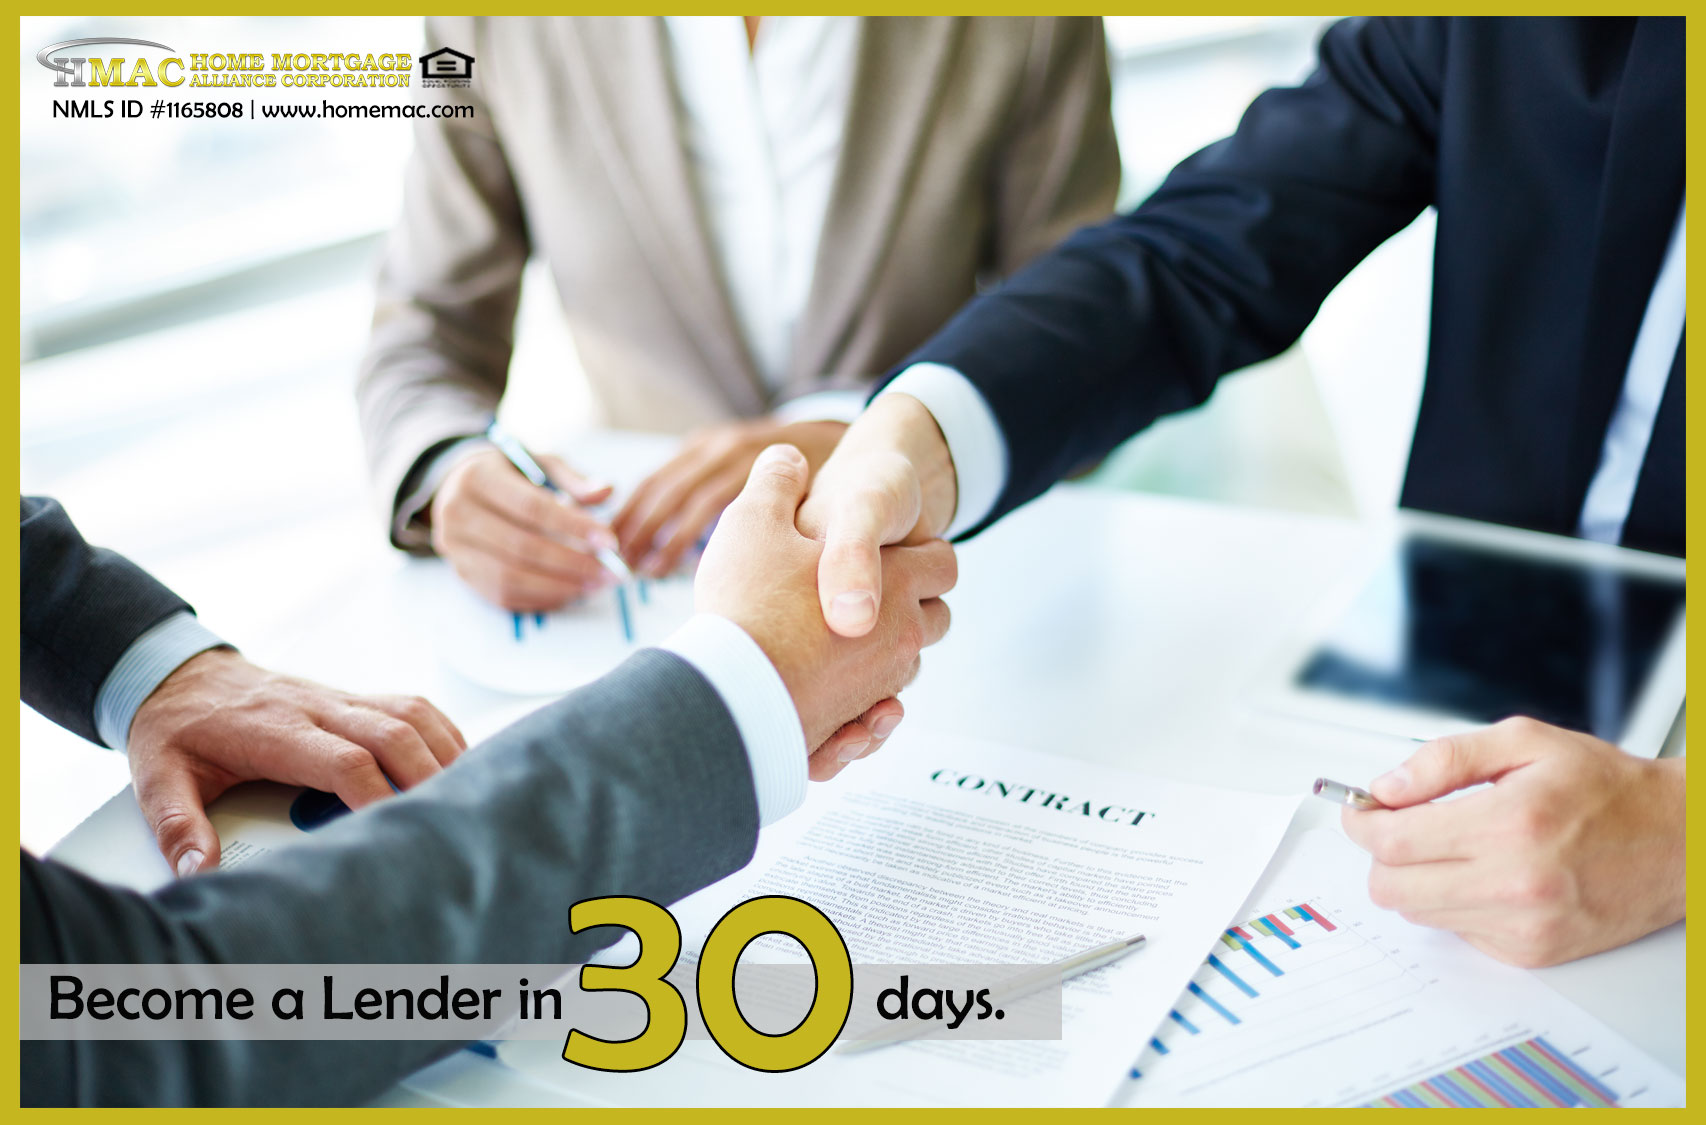 become a lender in 30 days